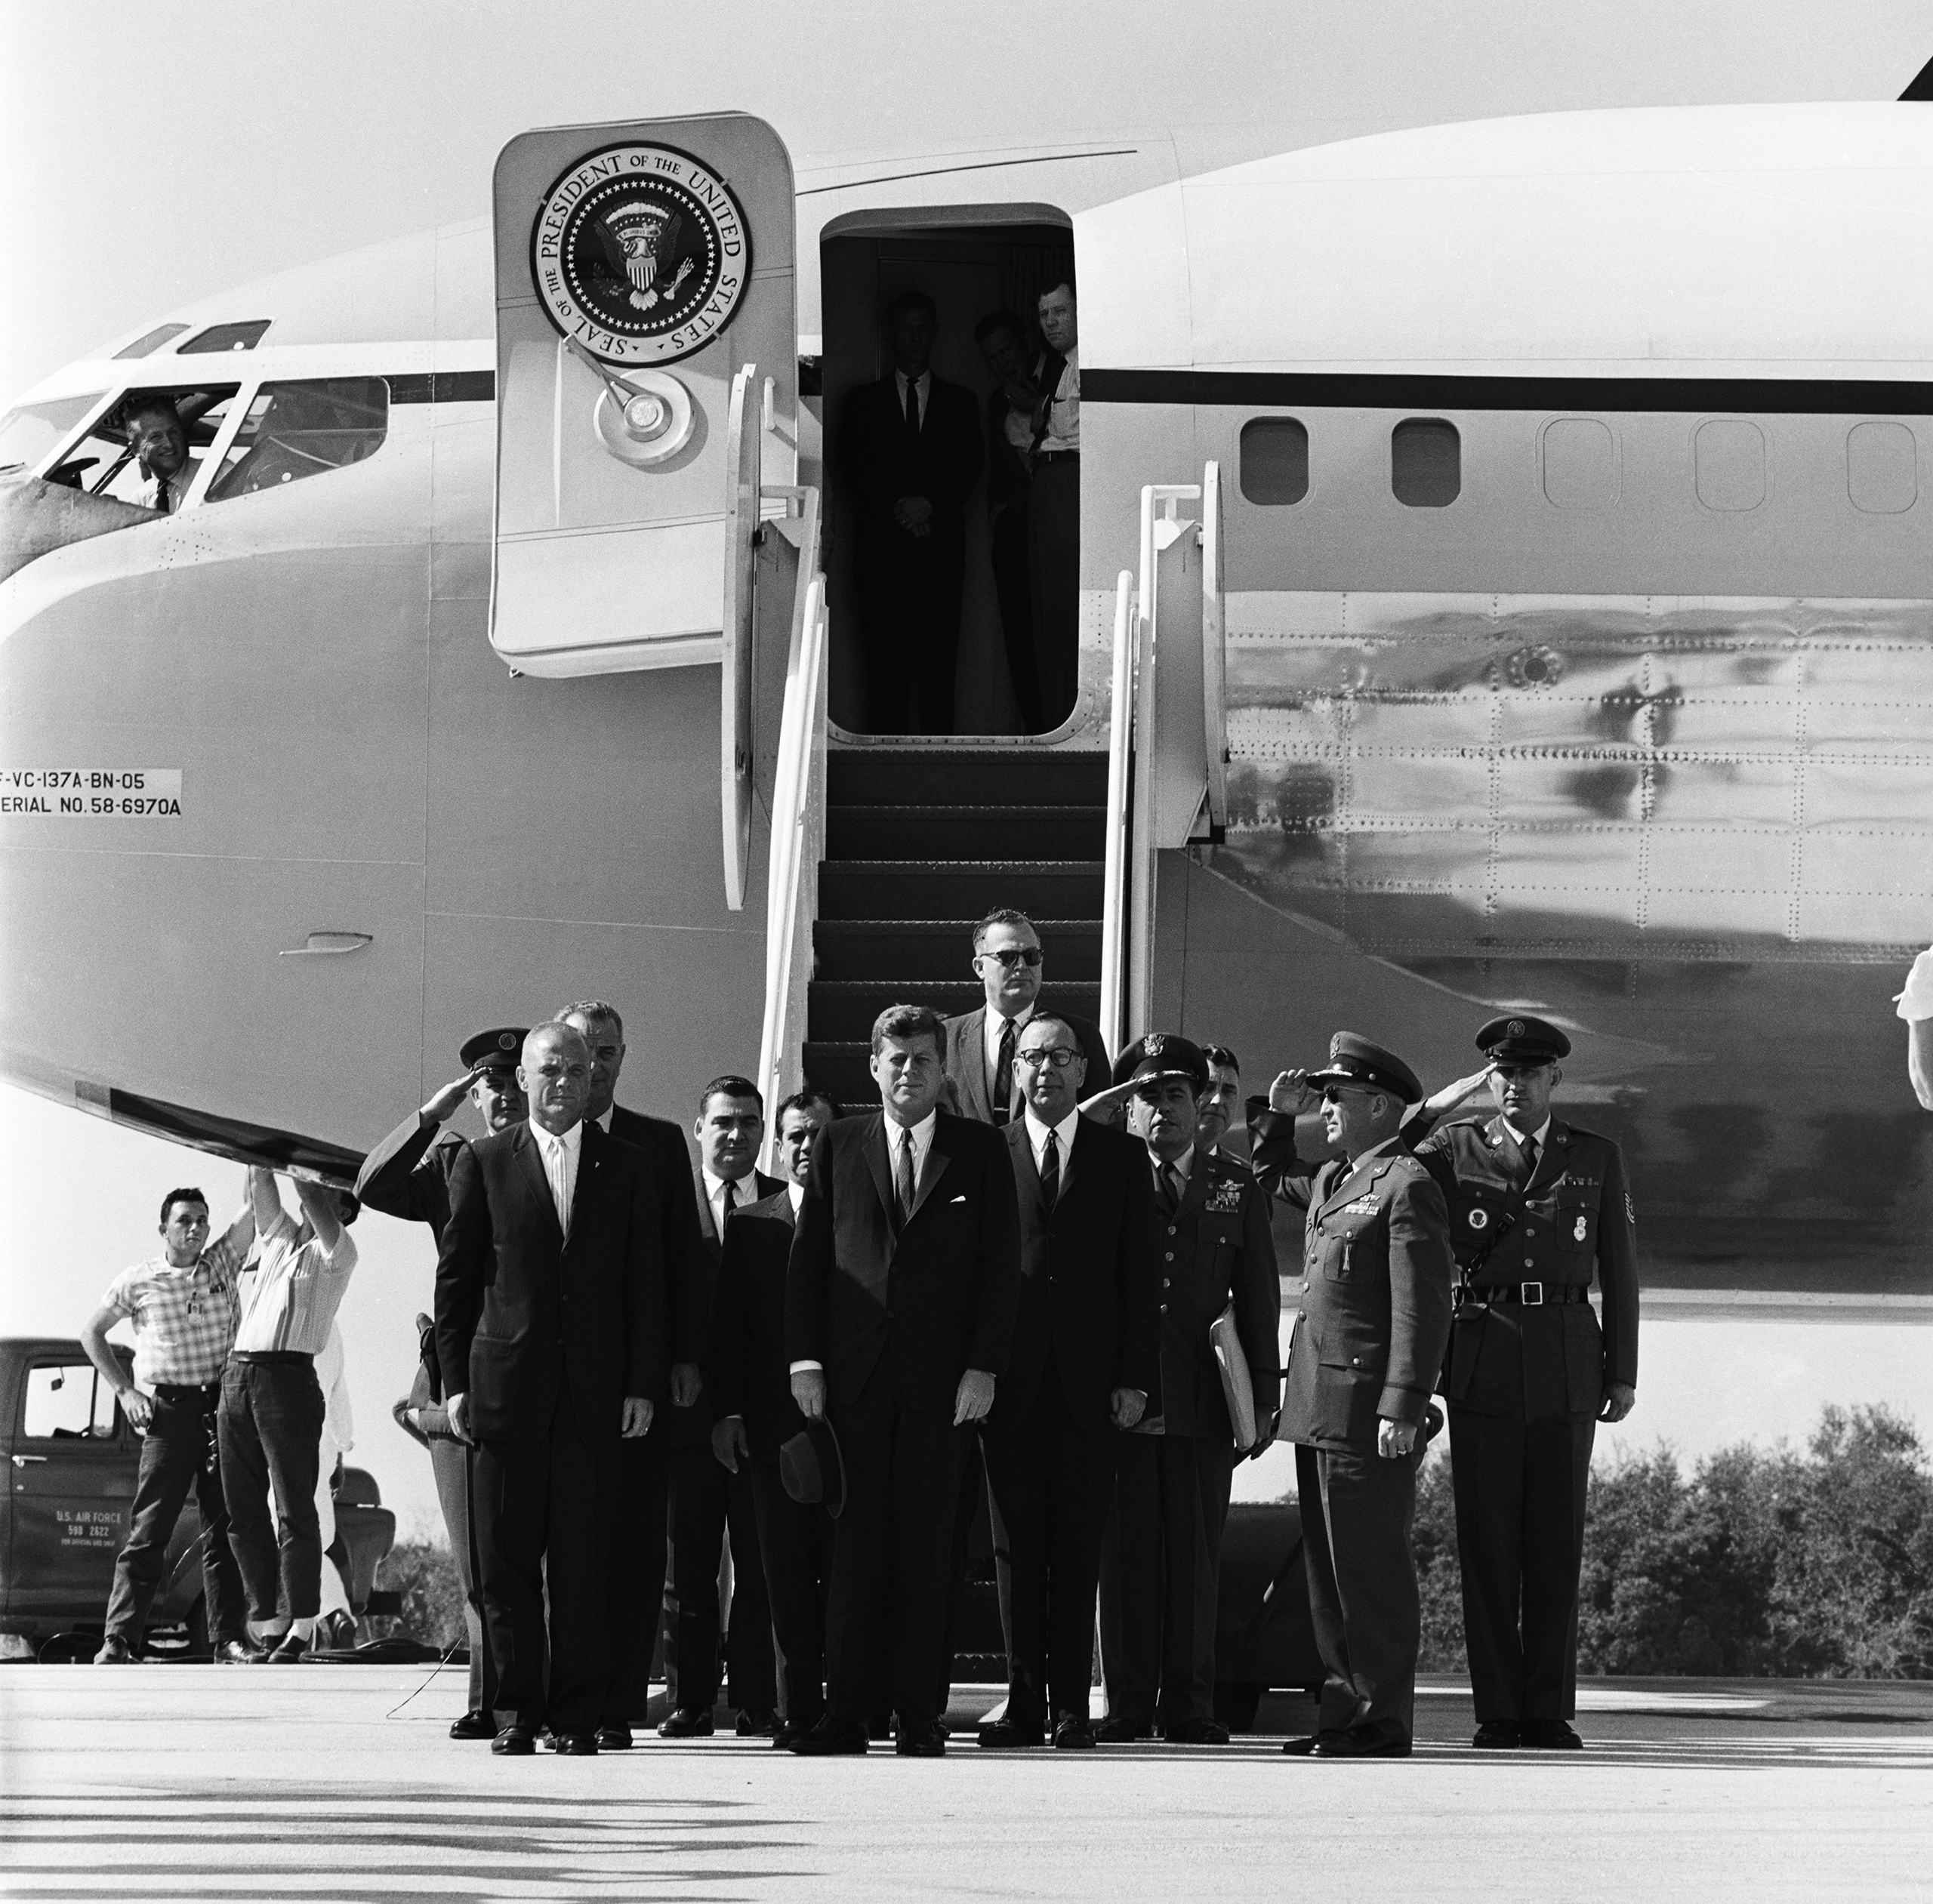 <b>A Presidential Tribute</b> On Feb. 23, 1962, three days after the successful mission, President Kennedy and Vice President Johnson visit Cape Canaveral, Fla., to present Glenn with NASA's Distinguished Service Medal. (Johnson is visible just behind Glenn at left.)